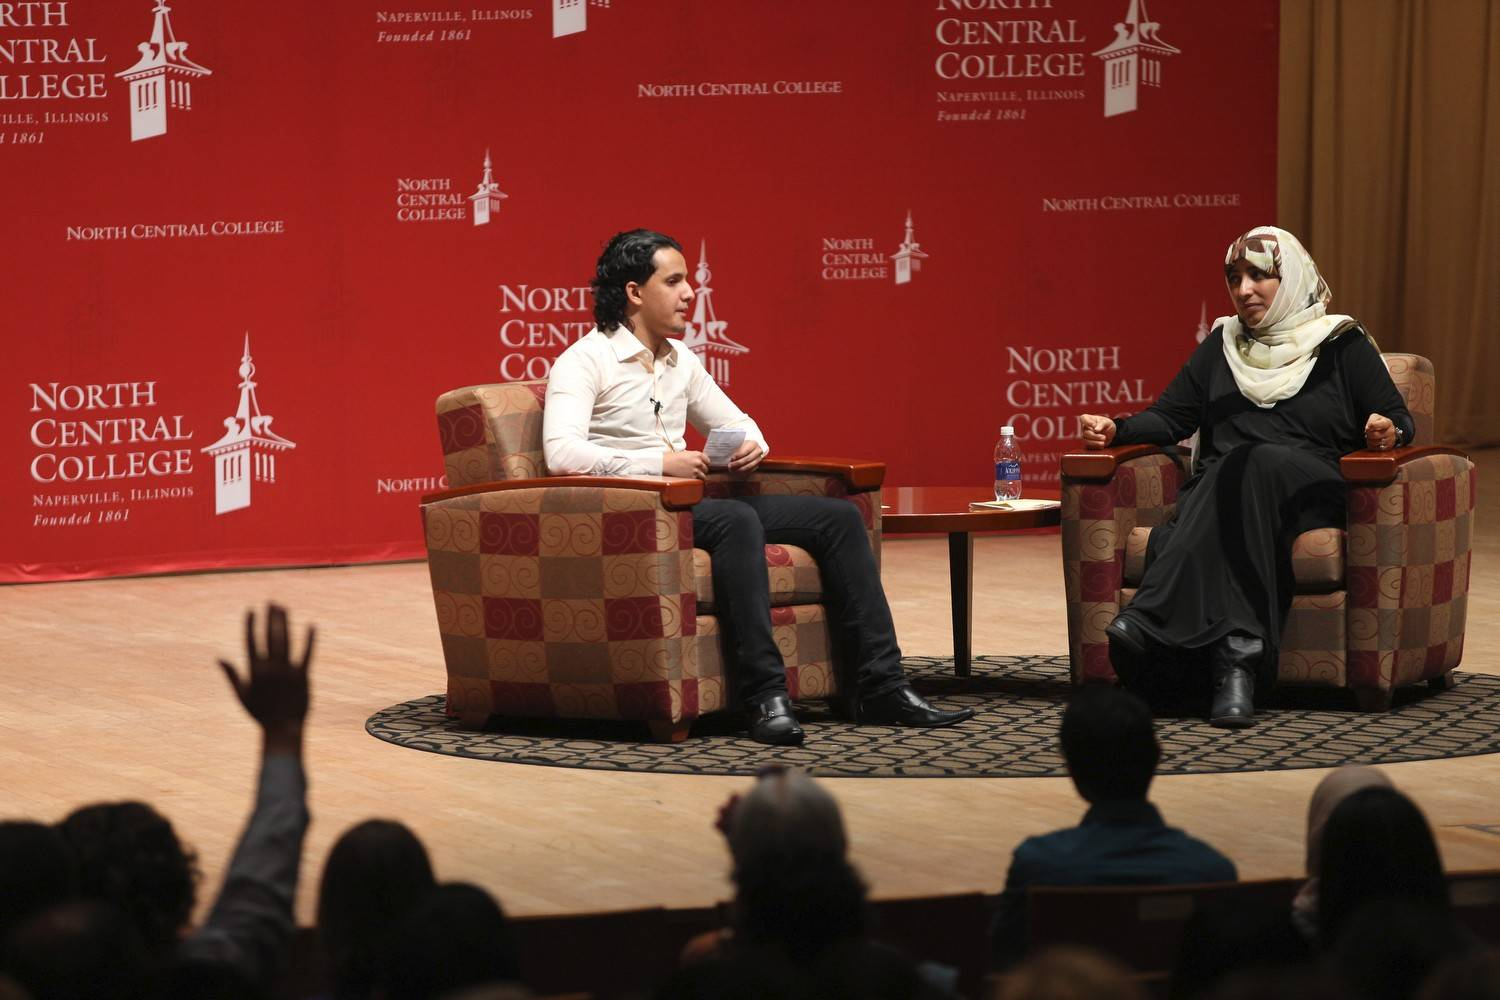 Tawakkol Karman, right, participates in a Q&A session at North Central College with Mustafa Alnaqeb, an international student from Yemen.